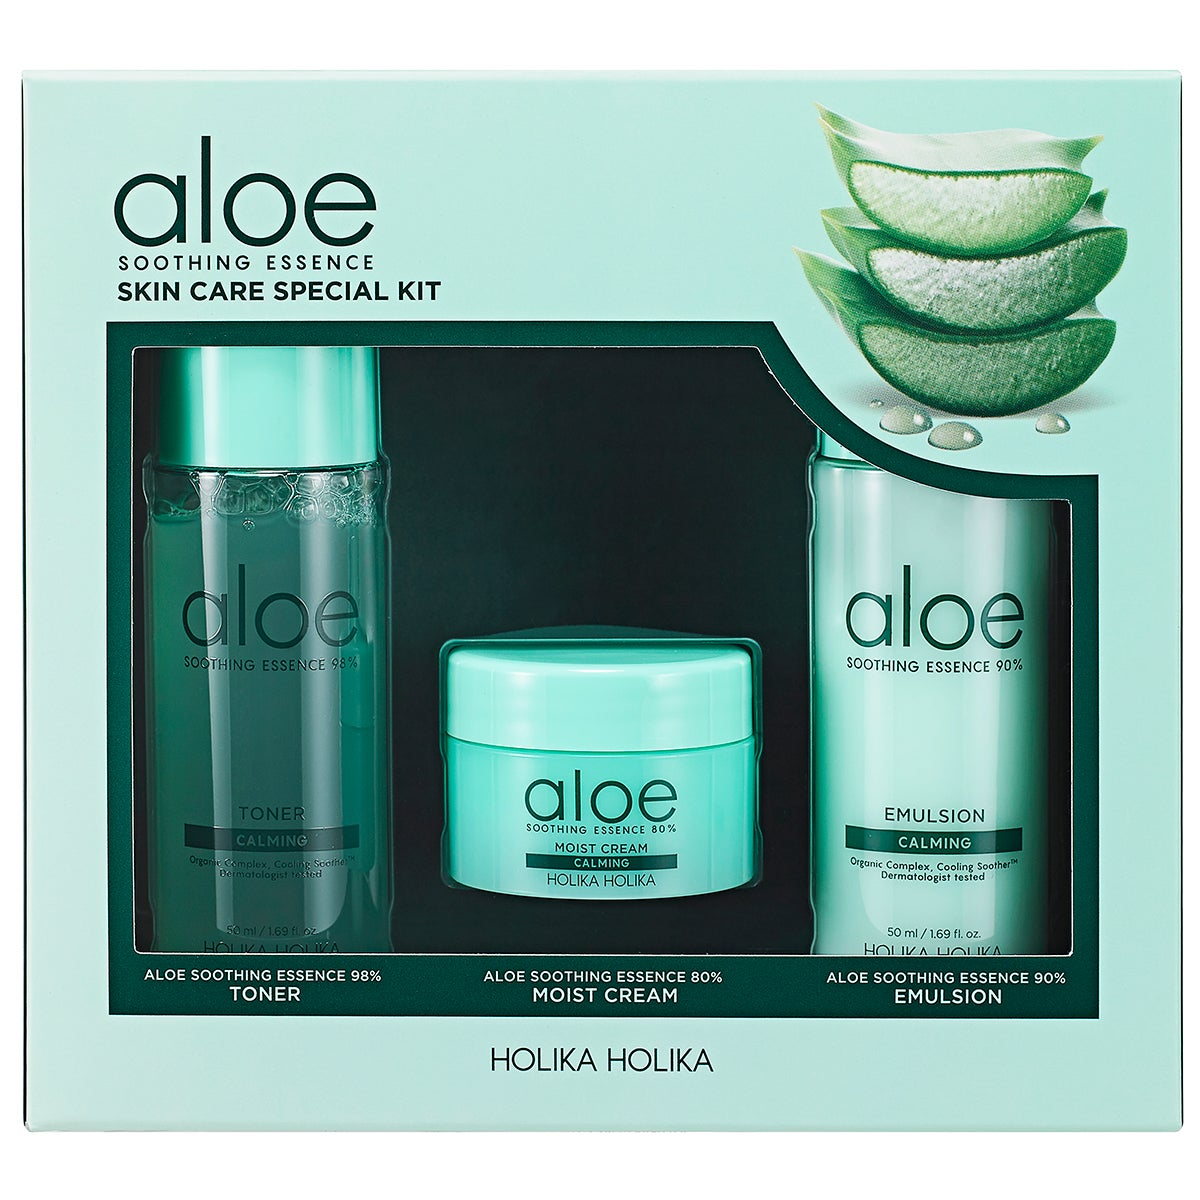 Aloe Soothing Essence Skin Care Special Kit Holika Holika K-Beauty Kit